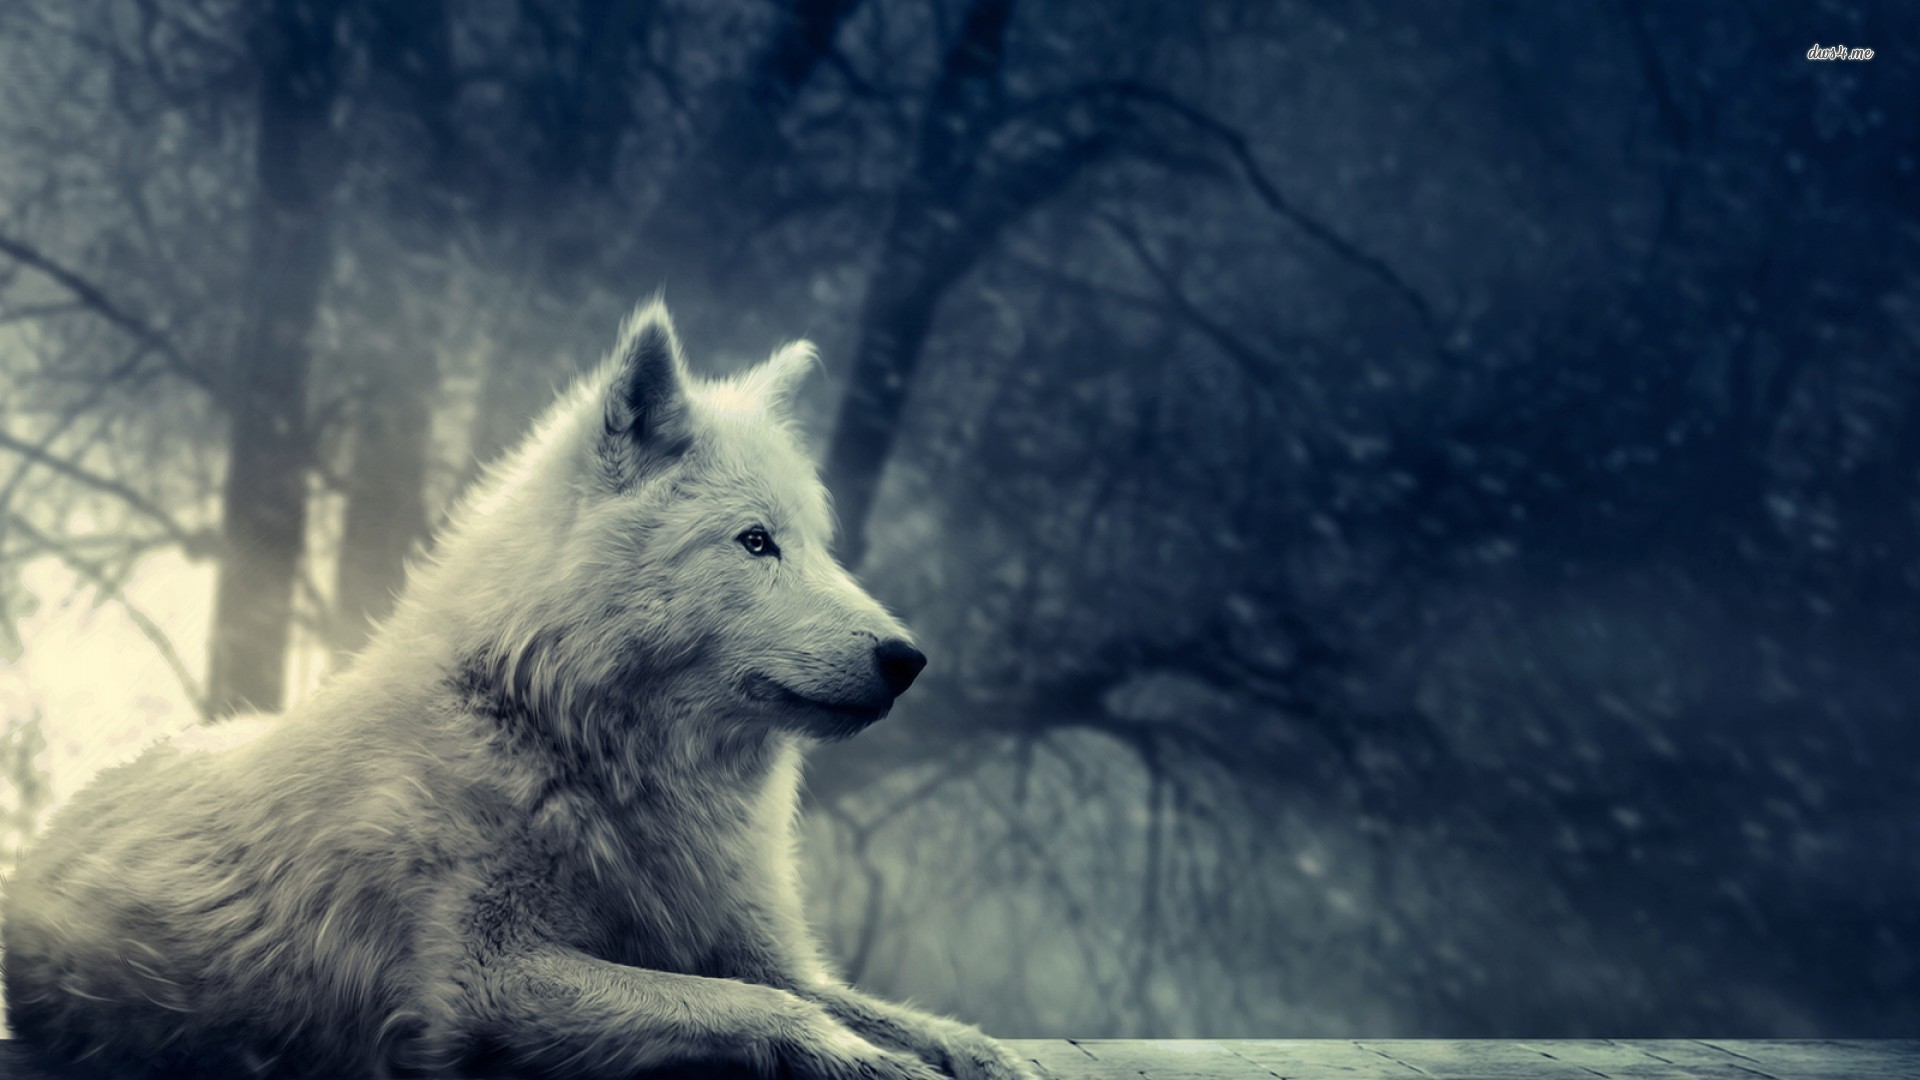 ... Desktop Wallpapers, Wonderful Wolf HD Wallpapers ... src